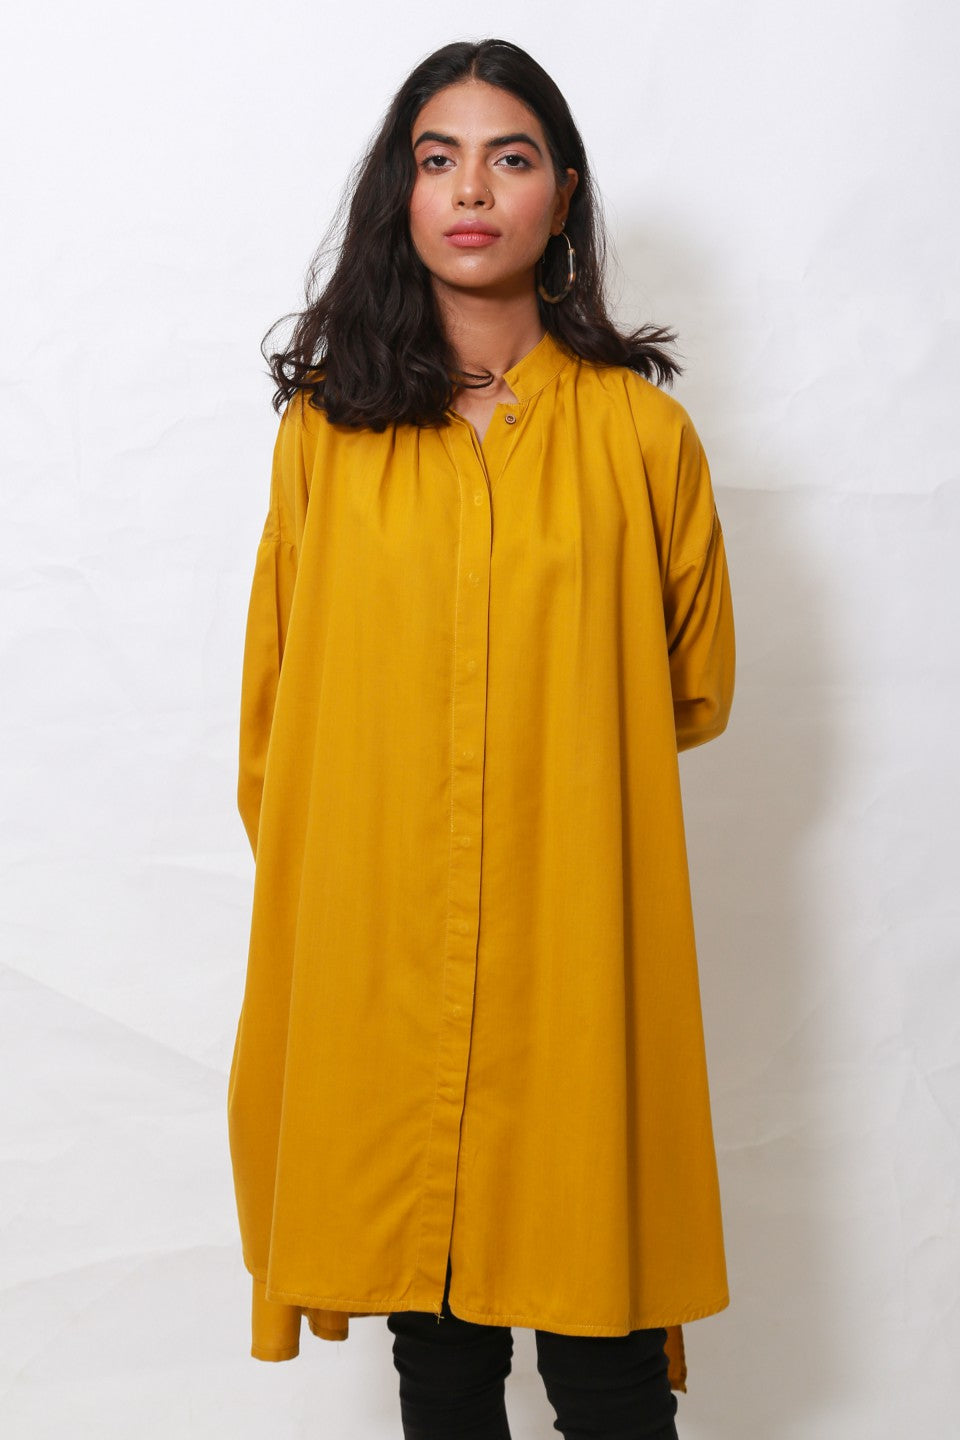 Generation - Golden Whatsup Warhol pleated tunic